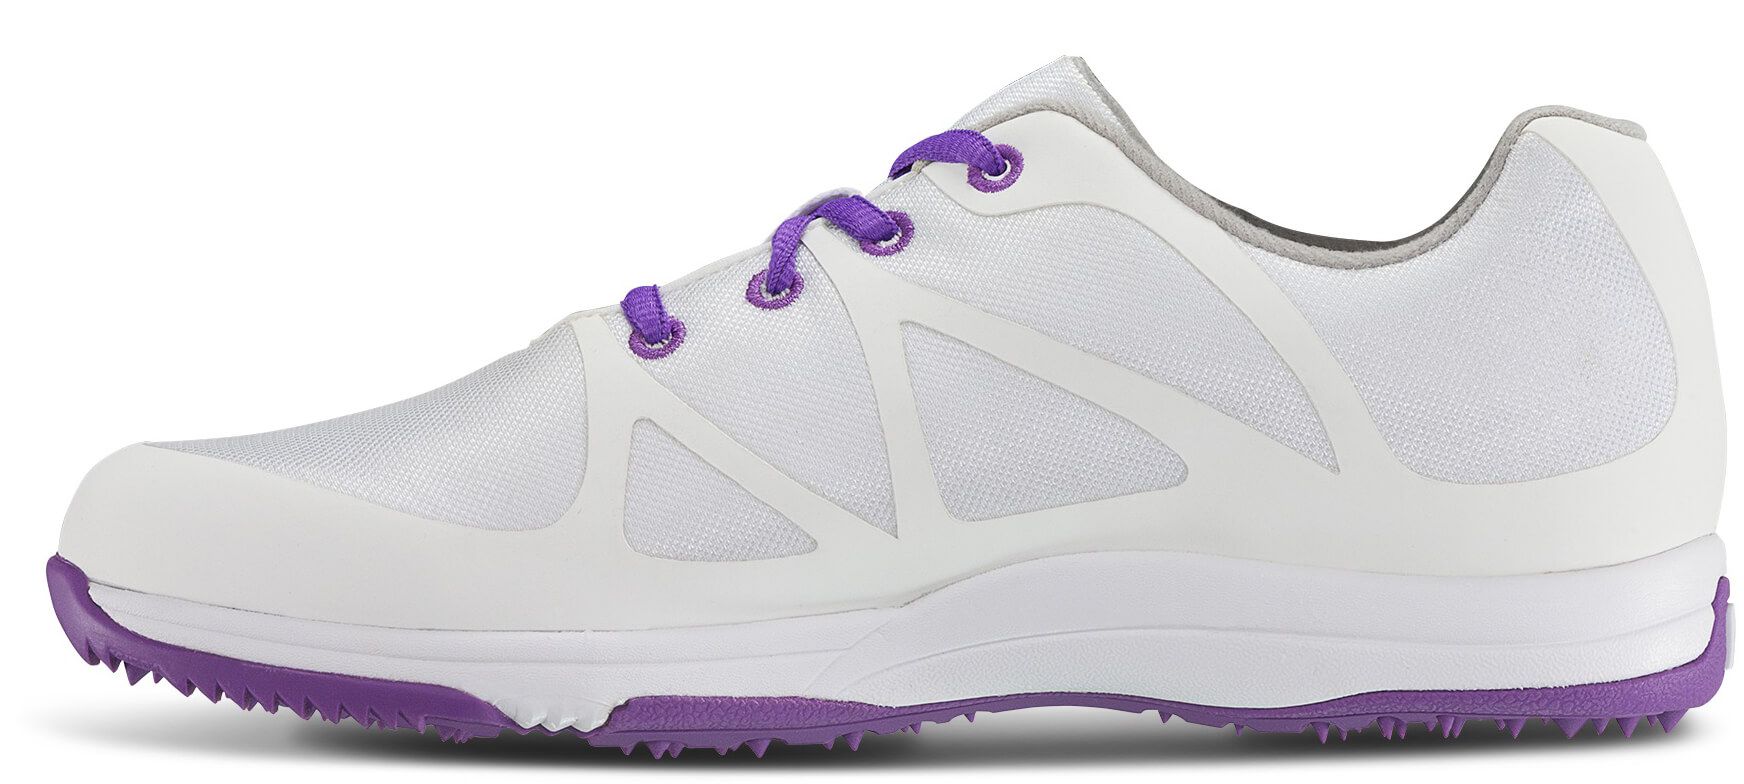 FootJoy-Women-039-s-Leisure-Golf-Shoes-Spikeless-Ladies-New-Choose-Color-amp-Size thumbnail 10